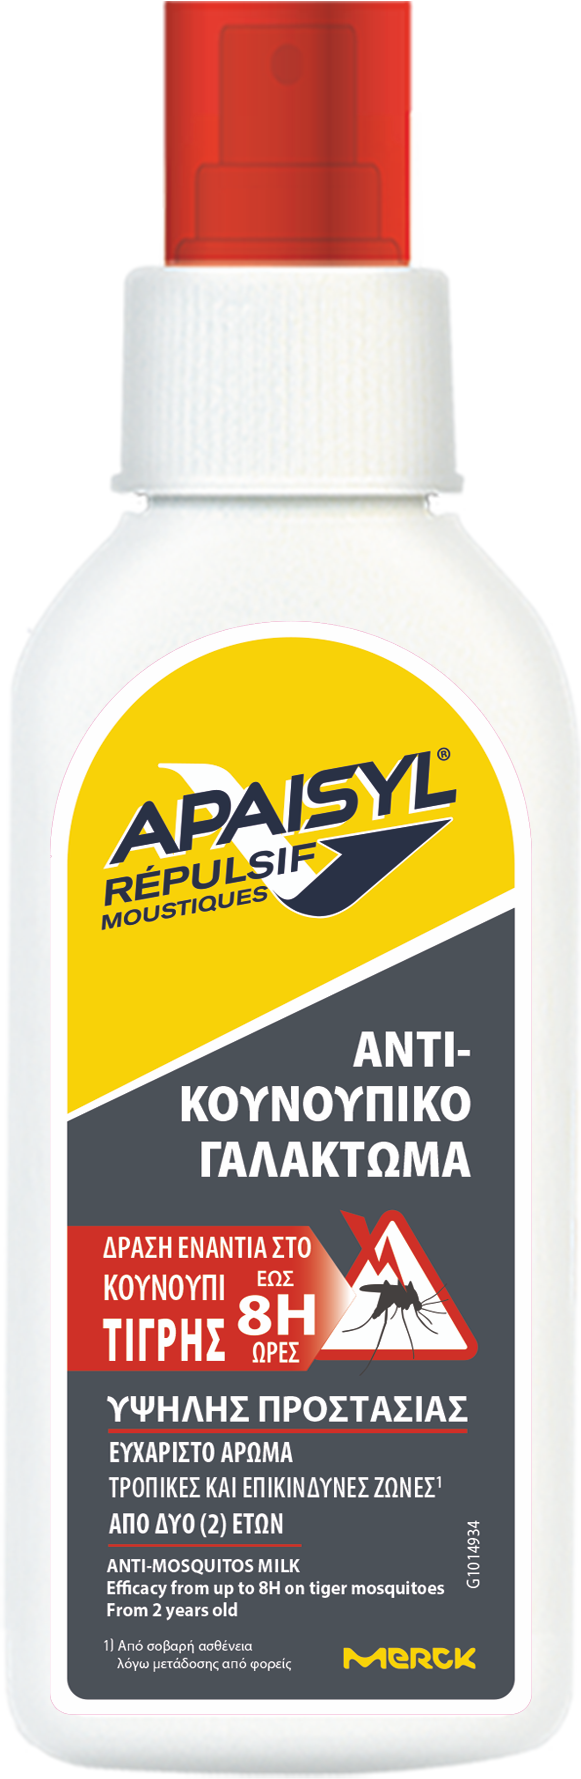 Apaisyl high protection antimosquito 90ml